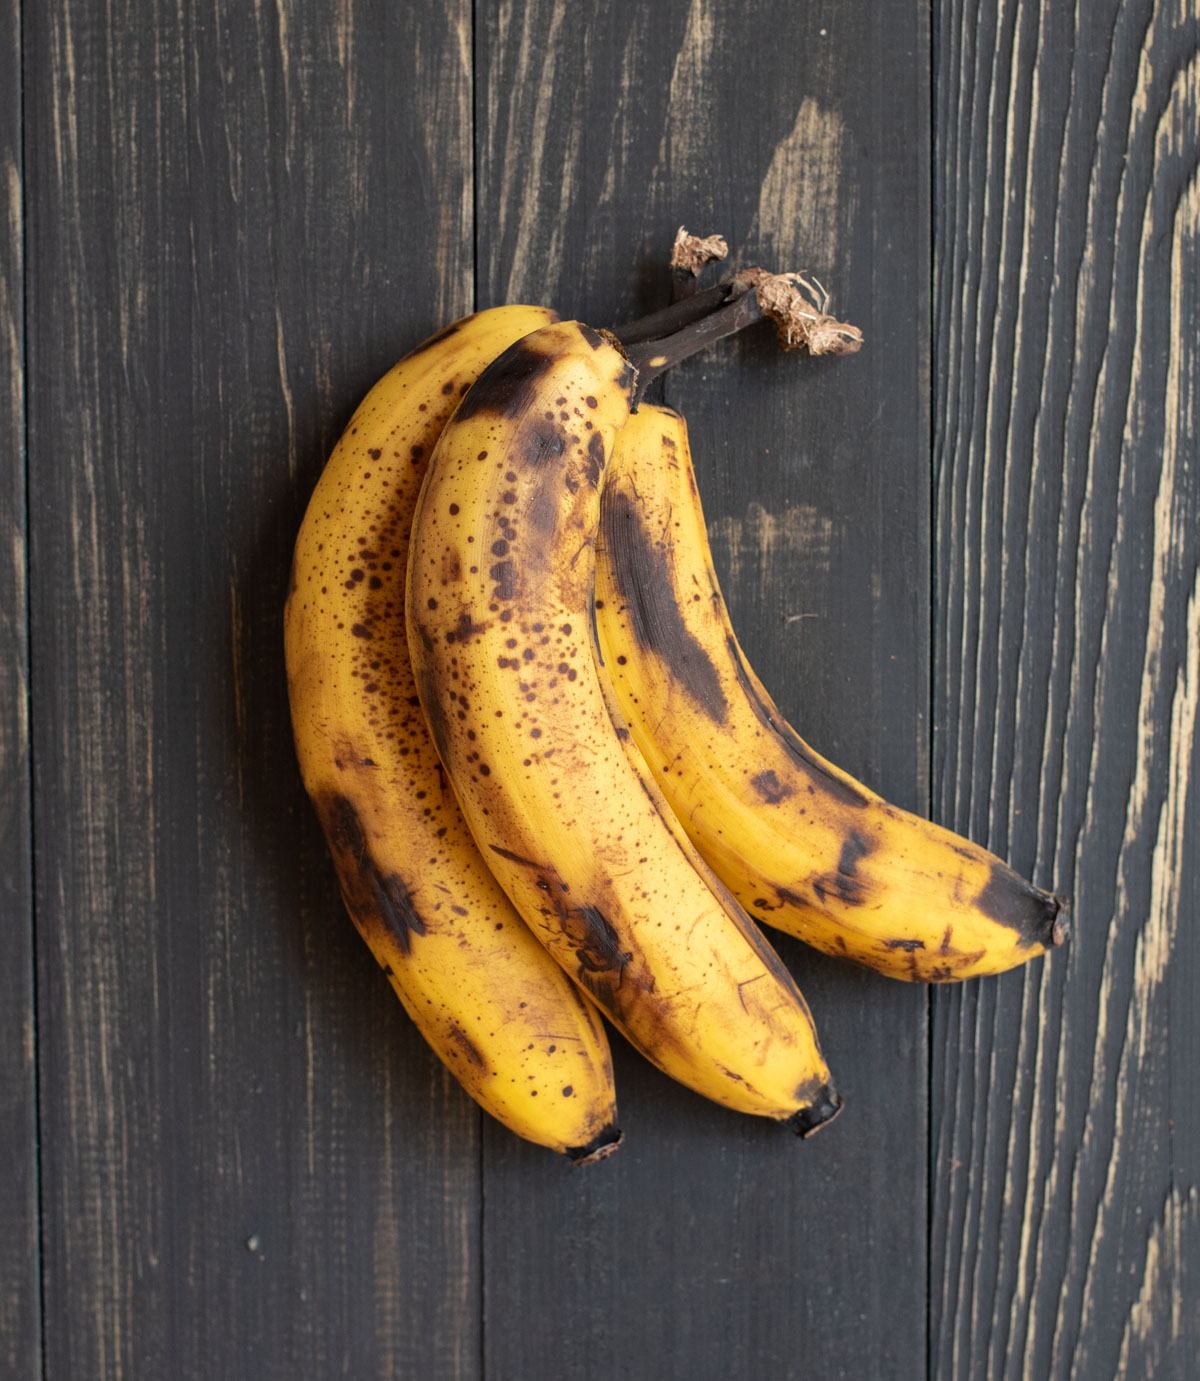 overripe banana bunch